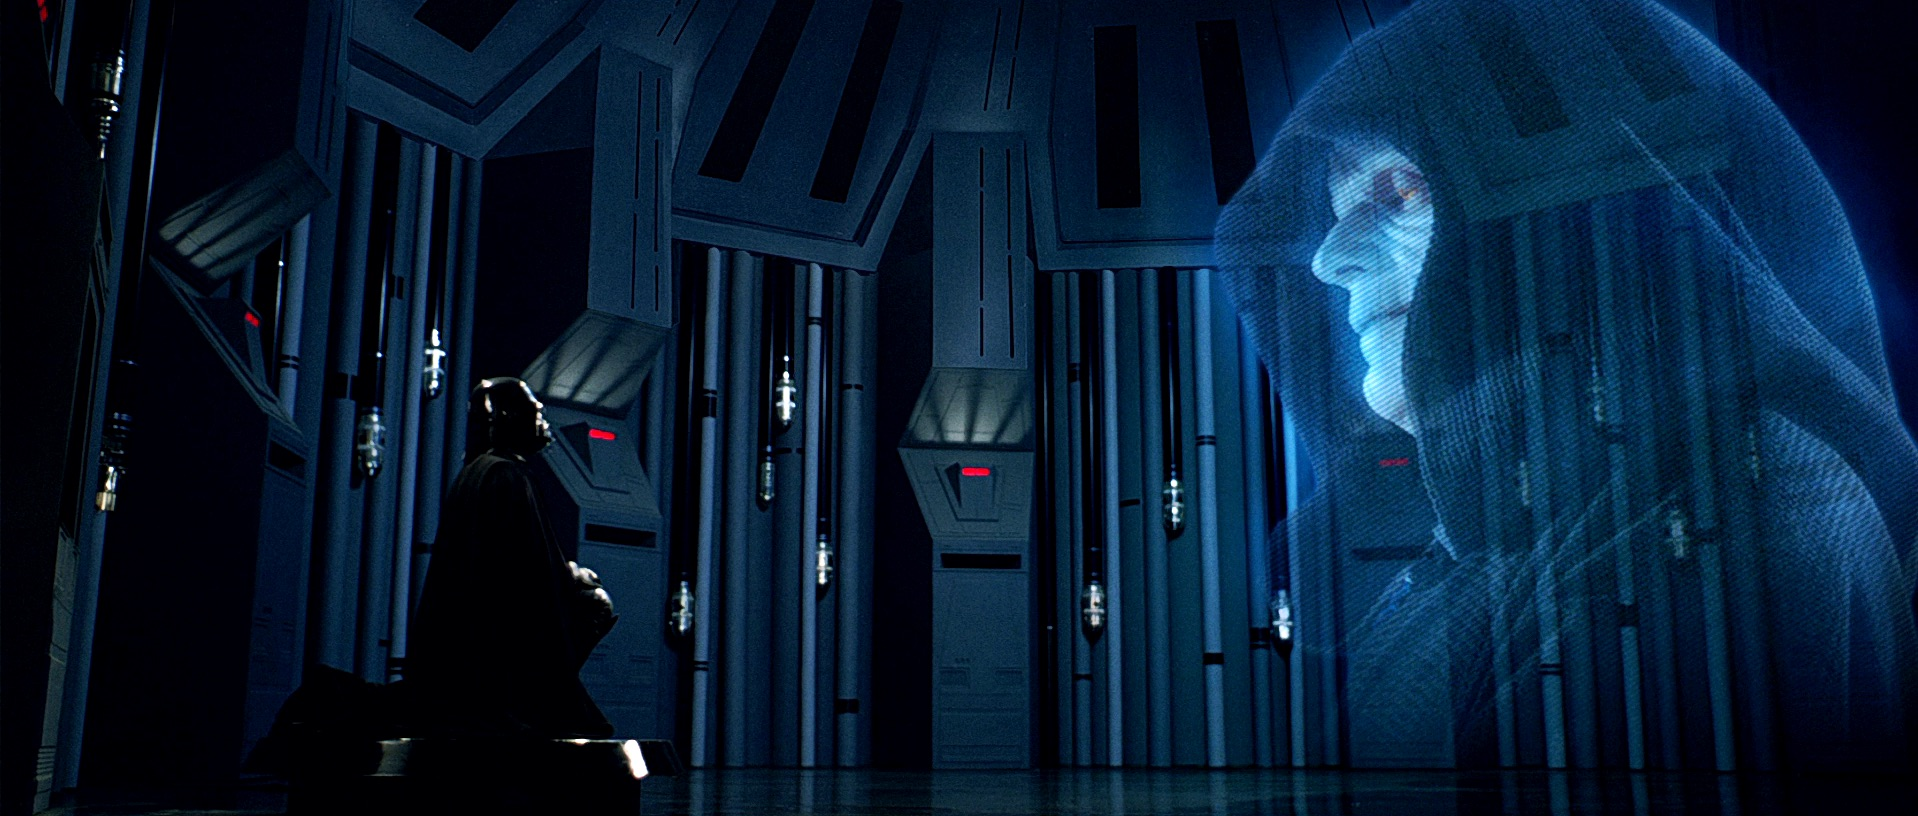 The Empire Strikes Back - Palpatine Hologram